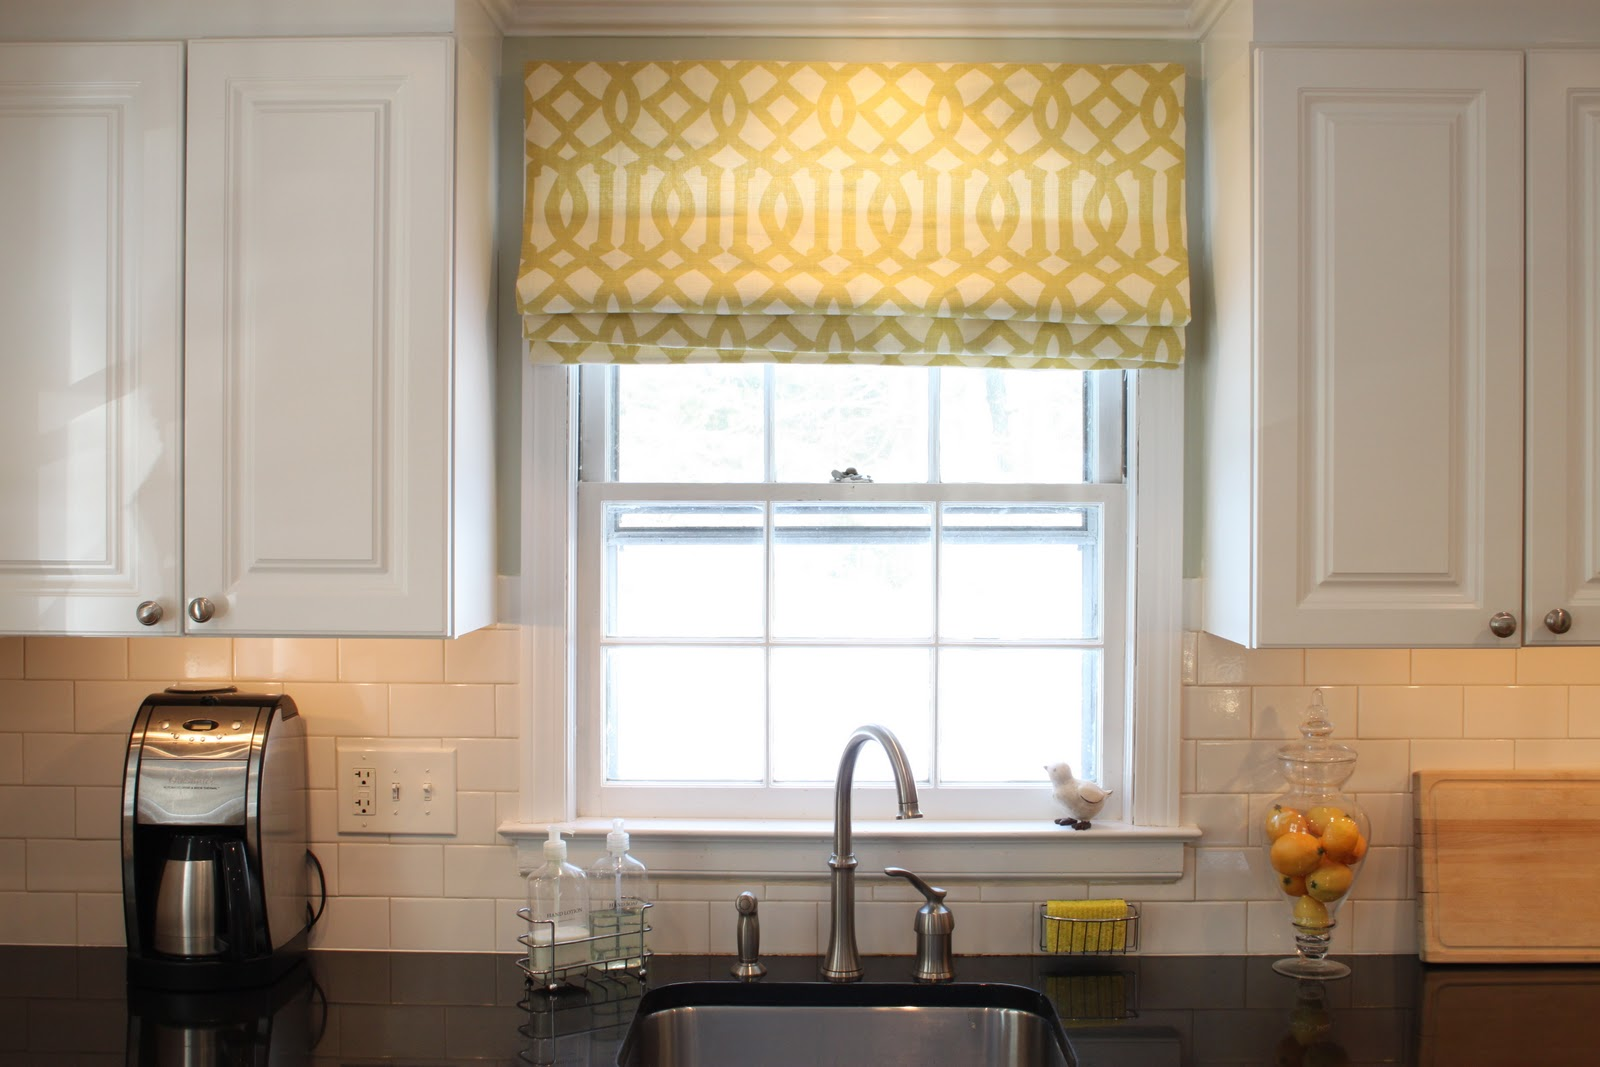 Here Are Some Ideas For Your Kitchen Window Treatments: drapery treatments ideas